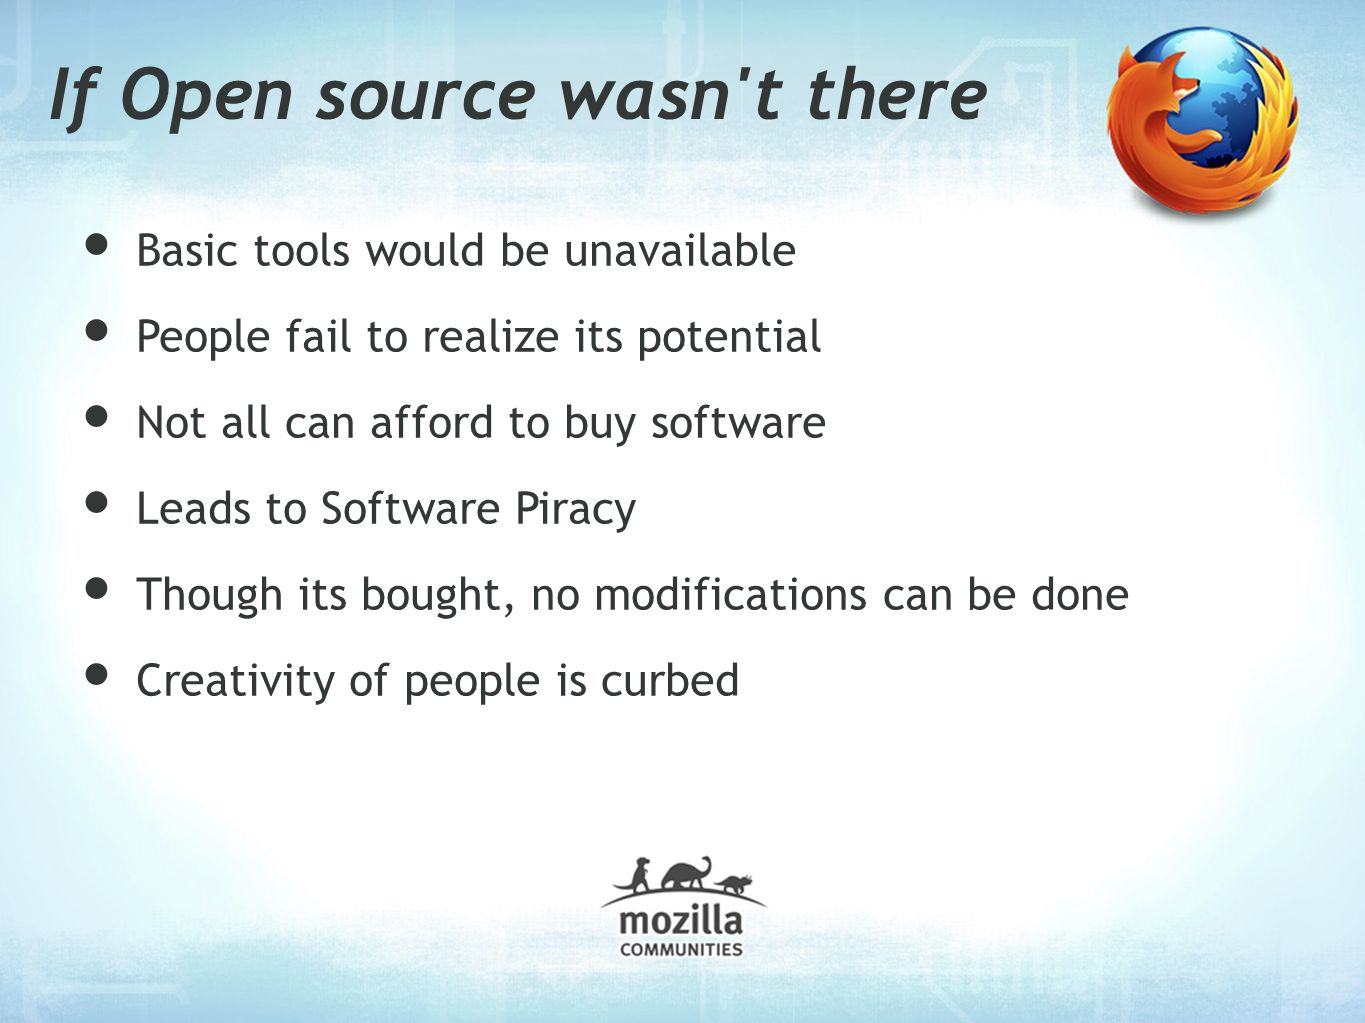 If Open source wasn t there Basic tools would be unavailable People fail to realize its potential Not all can afford to buy software Leads to Software Piracy Though its bought, no modifications can be done Creativity of people is curbed